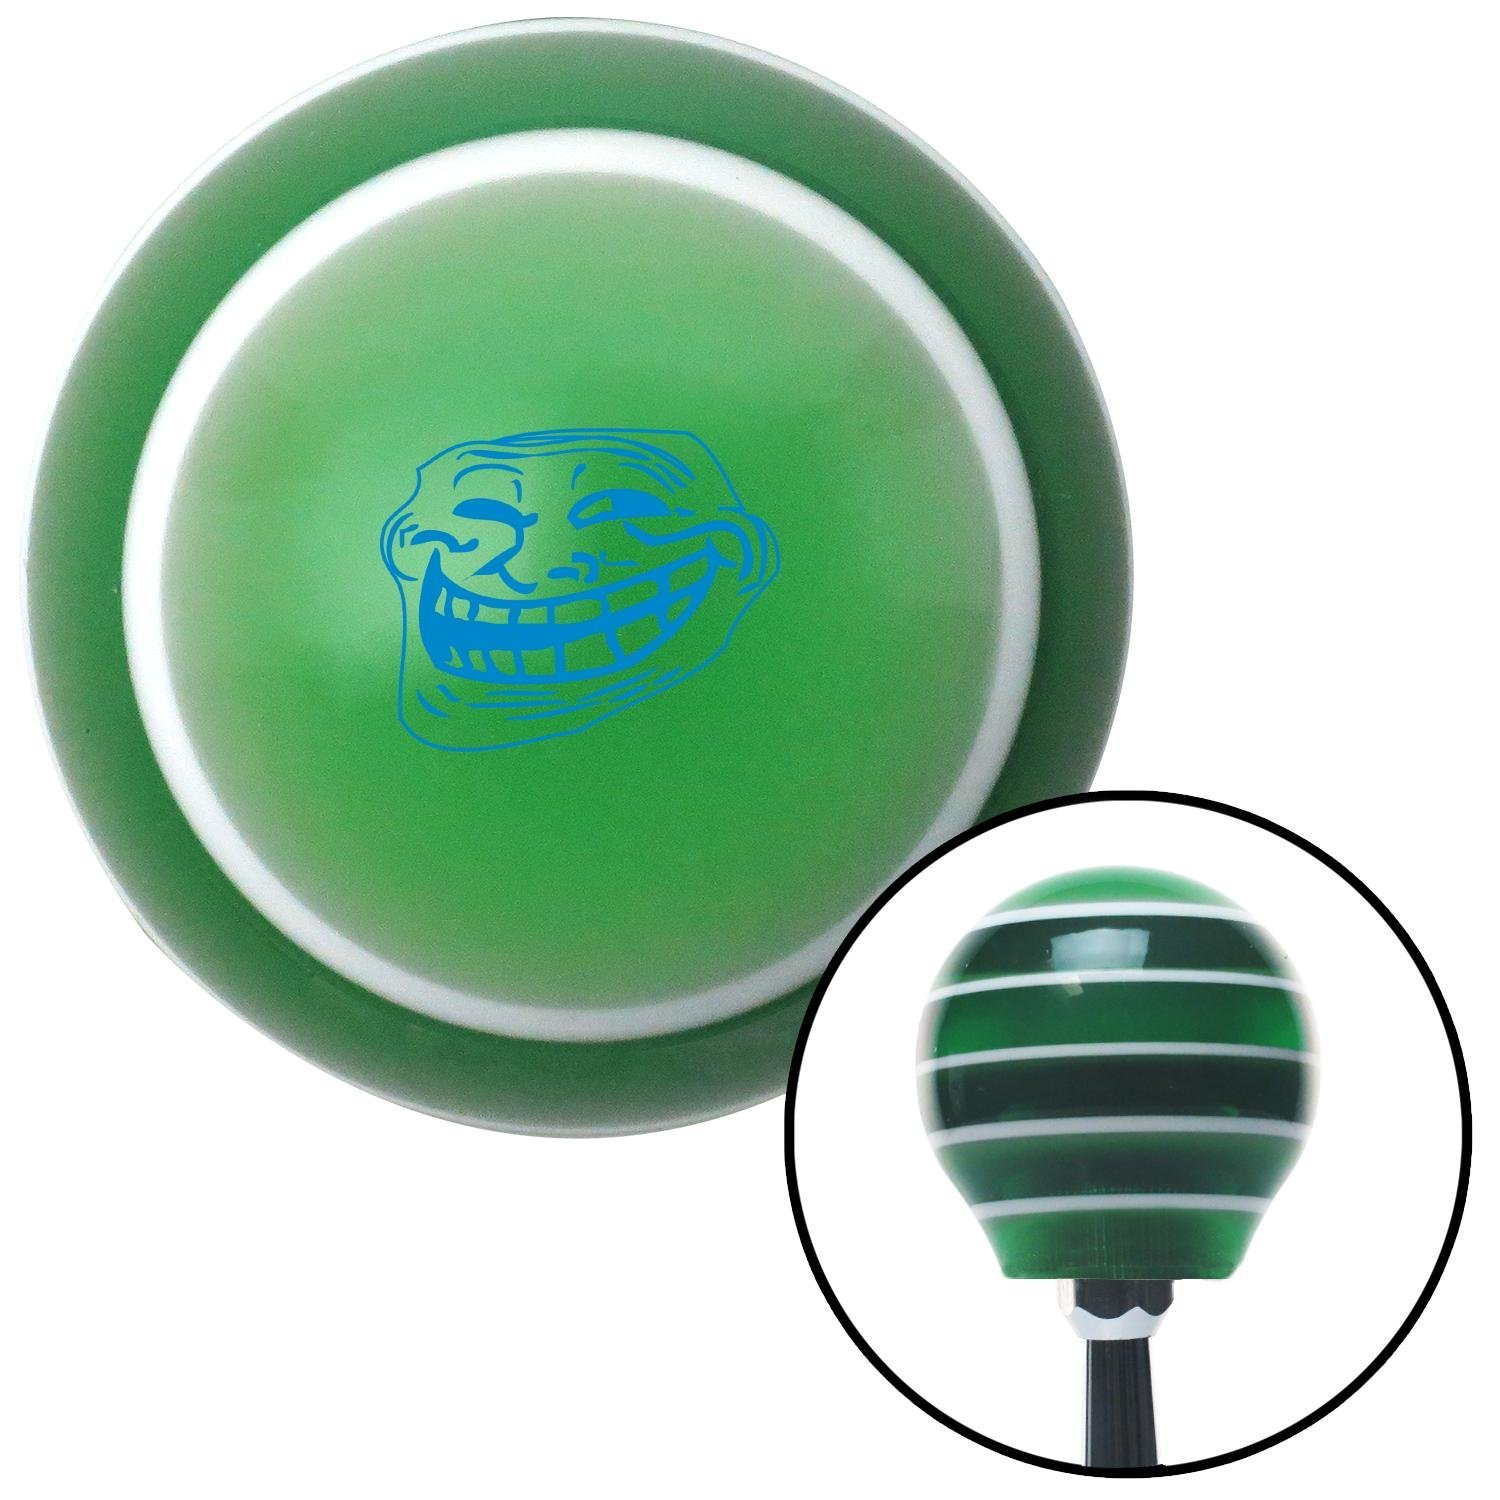 Green Cops 3 Me American Shifter 248219 Blue Flame Metal Flake Shift Knob with M16 x 1.5 Insert